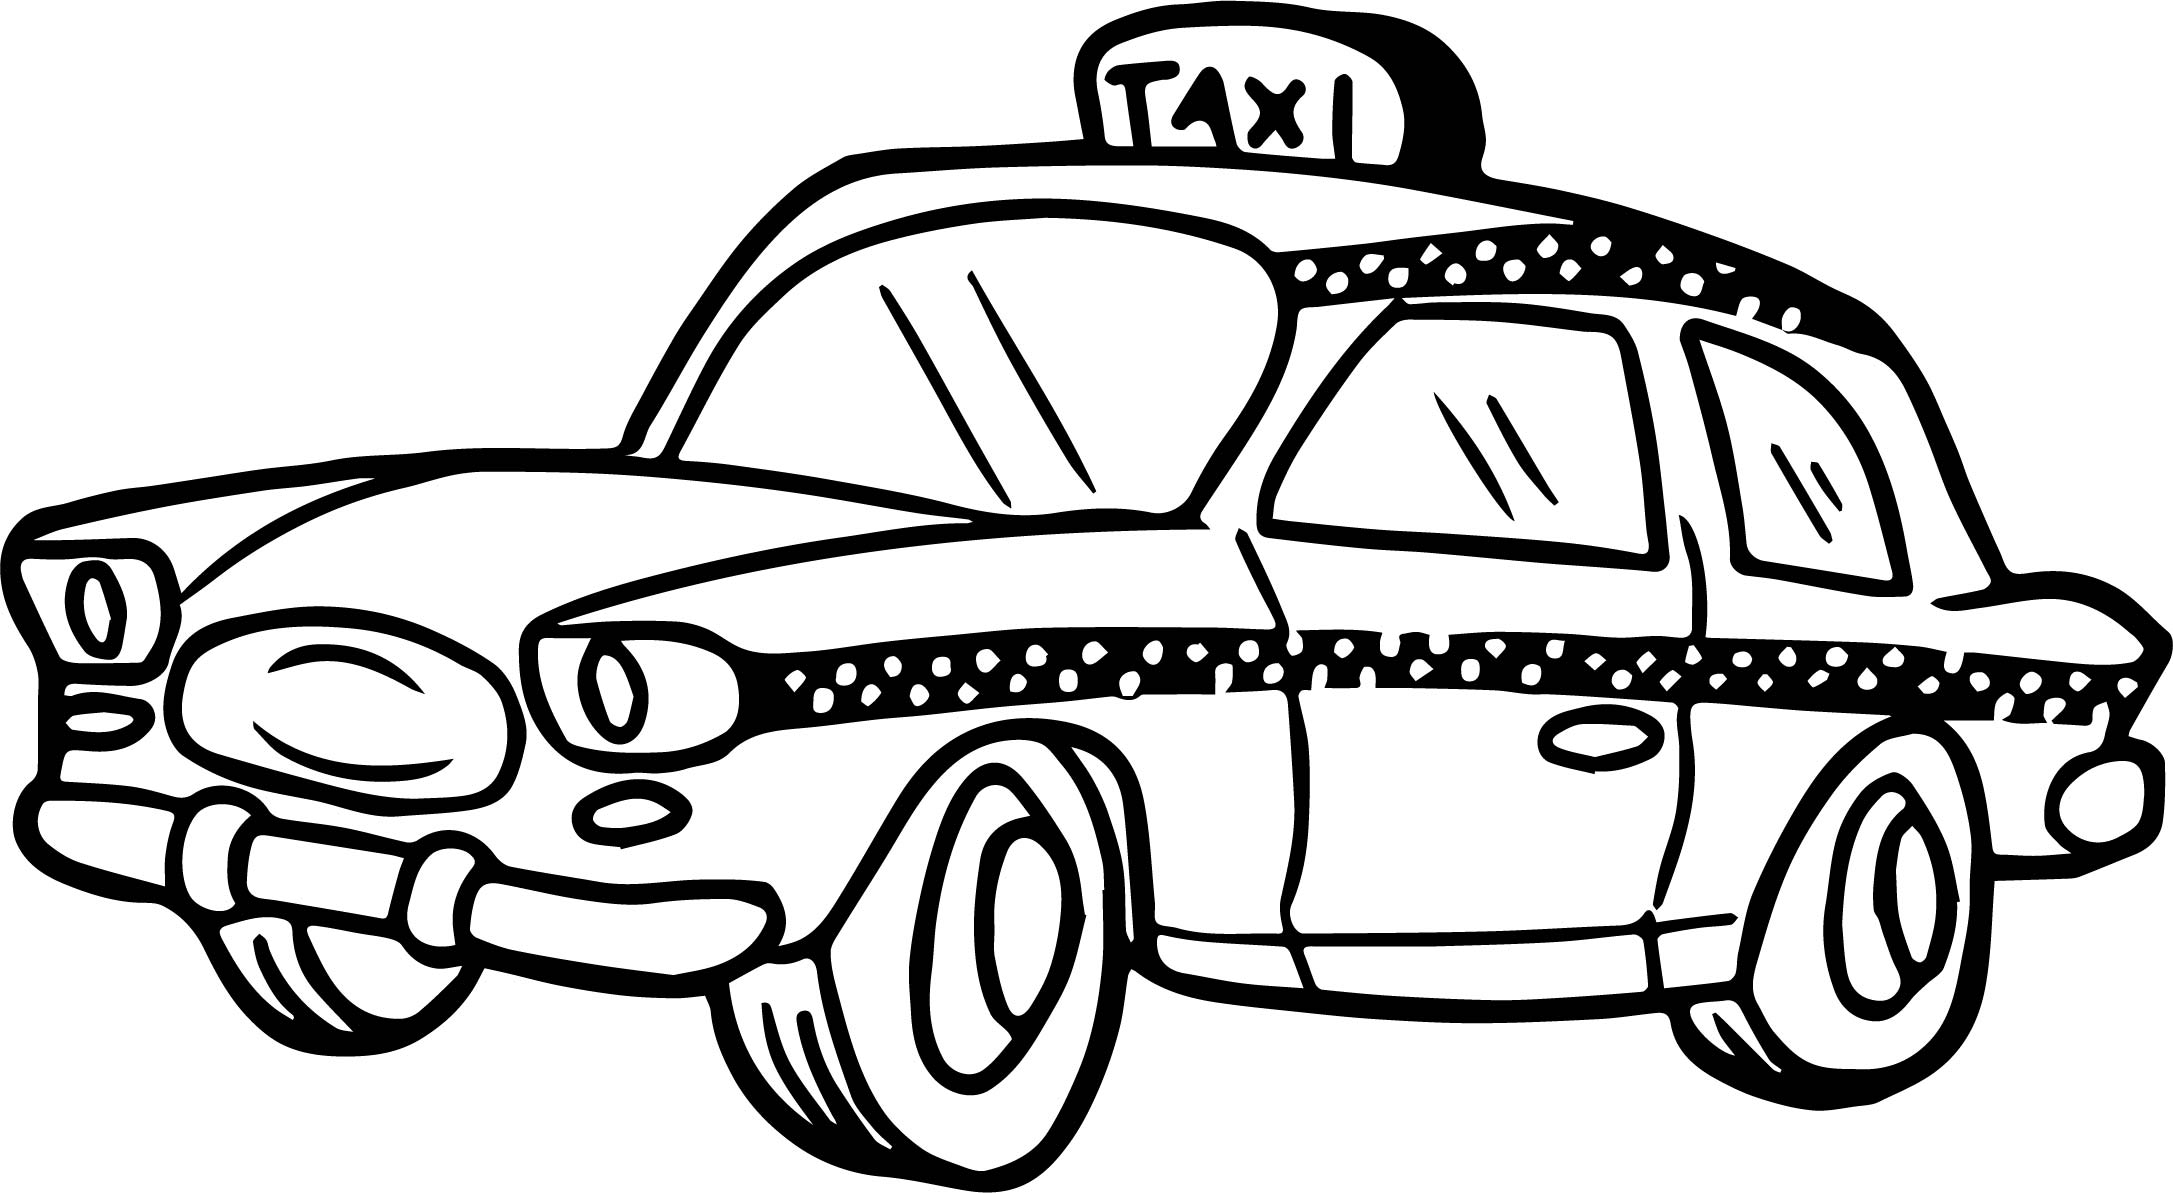 Cab clipart black and white 3 » Clipart Station.